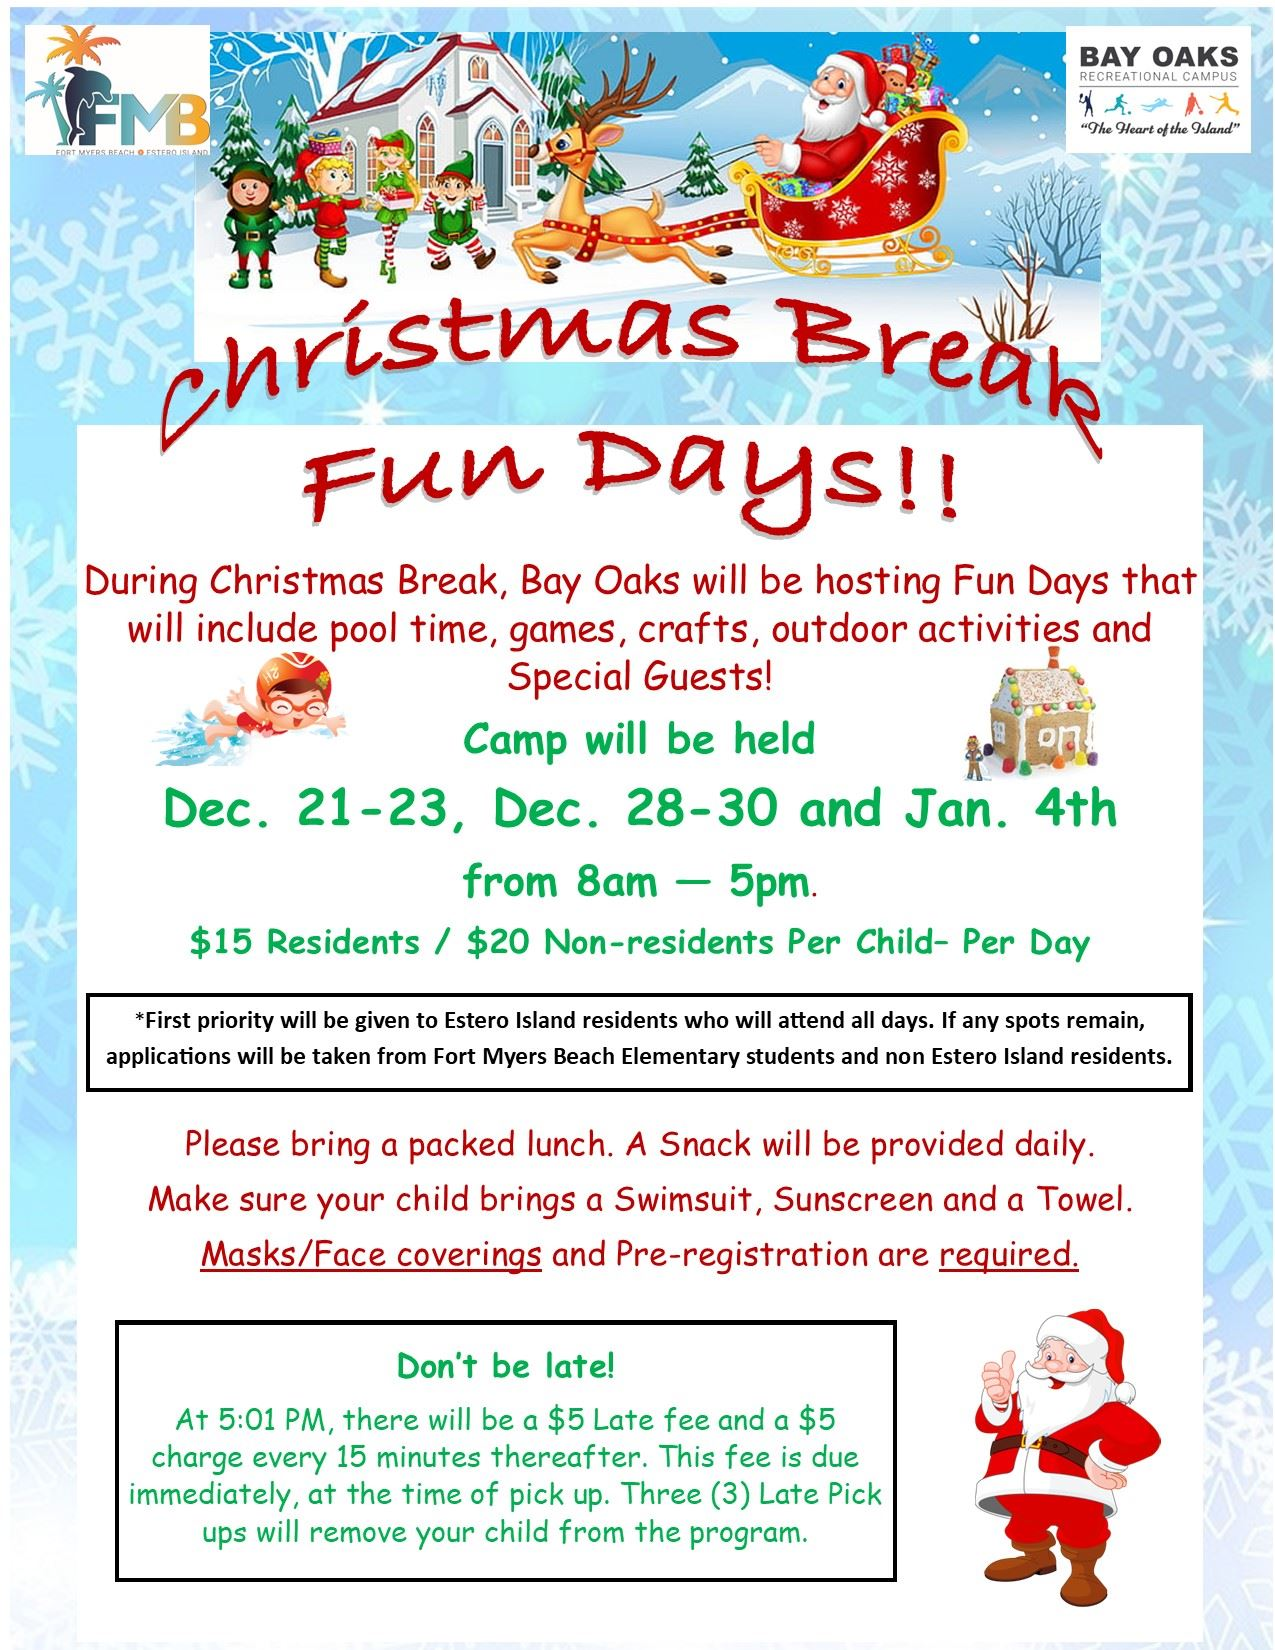 Christmaas Break Fun days flyer Opens in new window